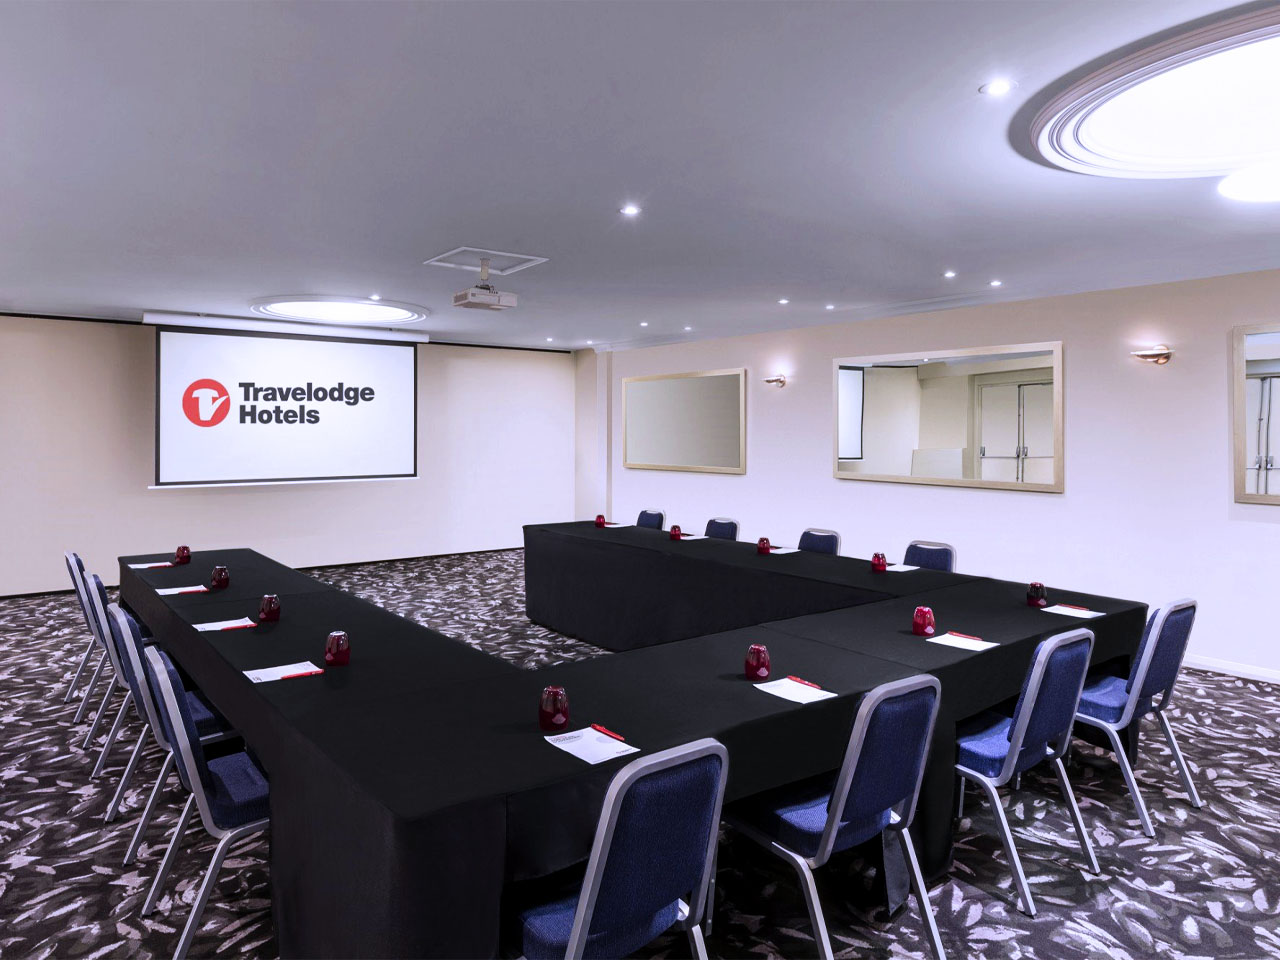 Meeting room with u-shaped table arrangement and projector screen